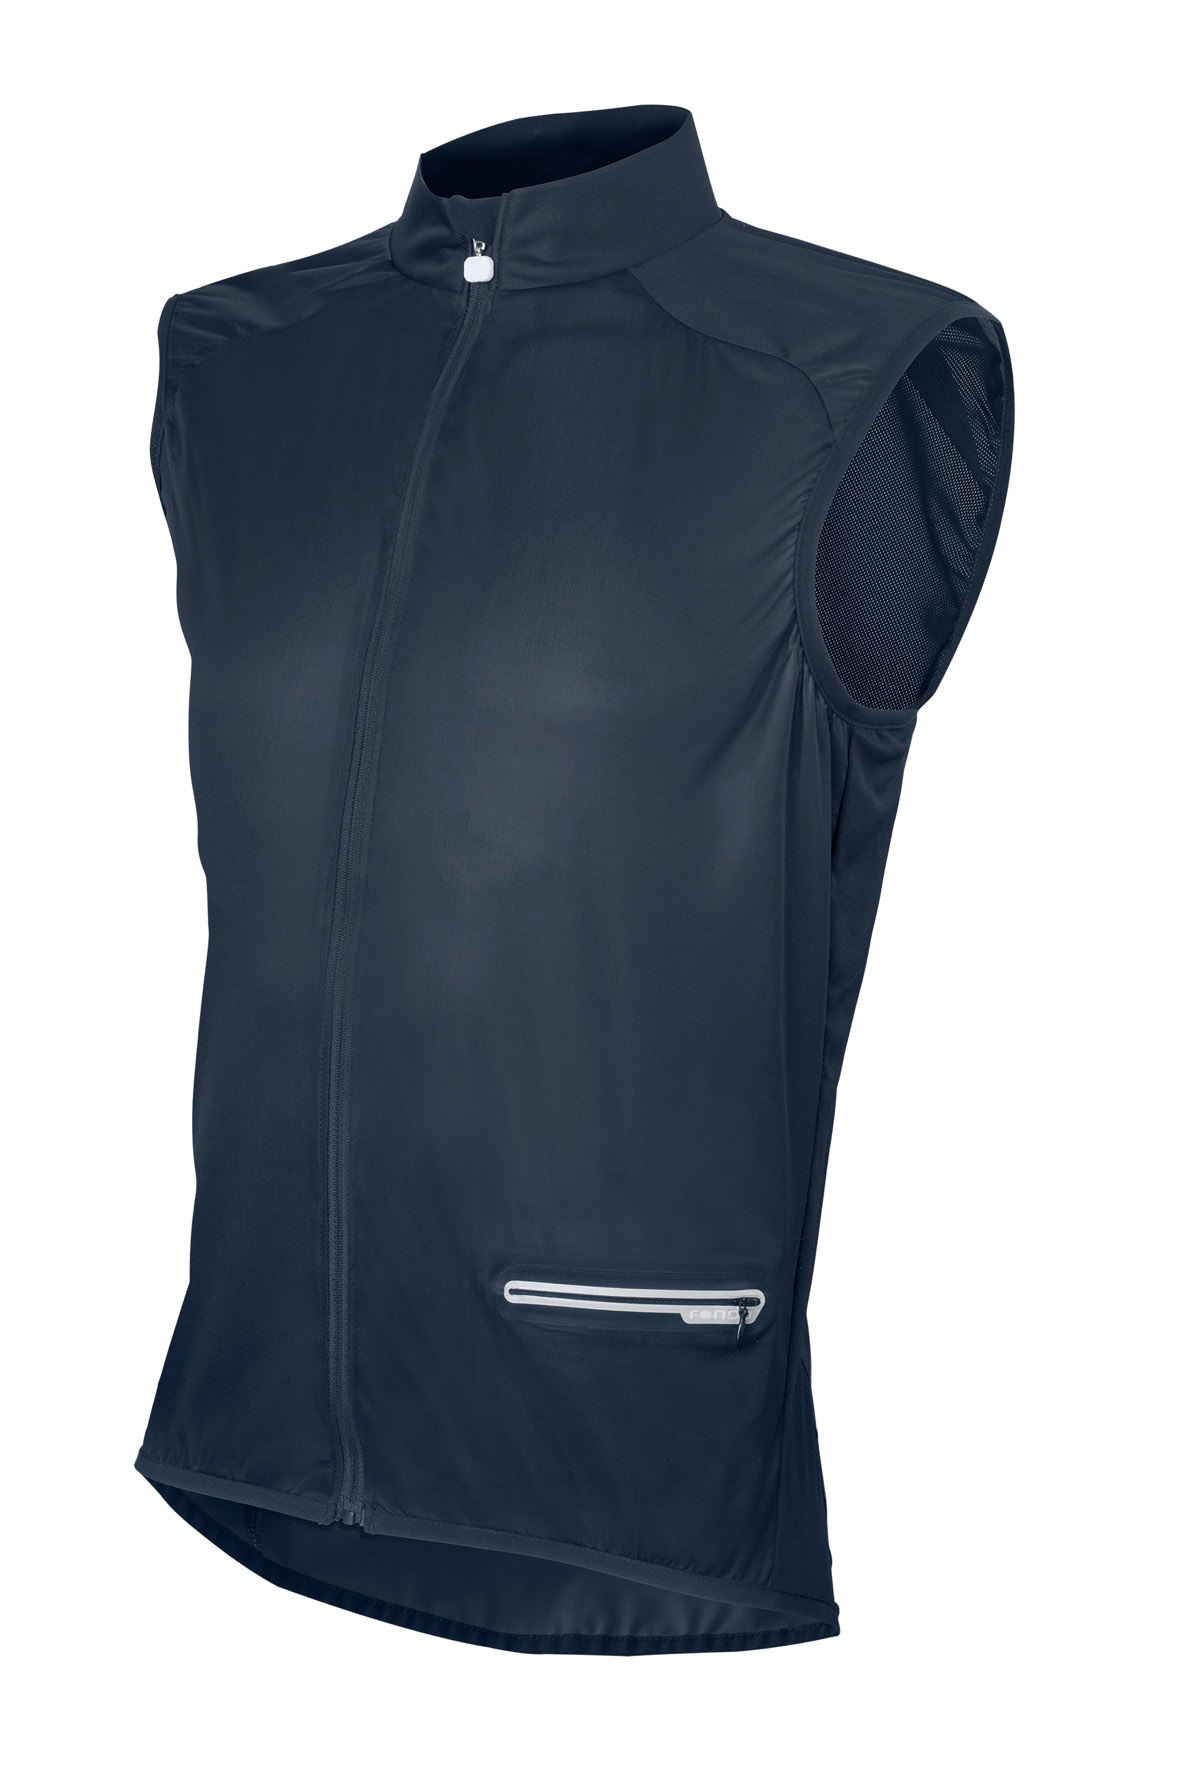 Wind Vest in Navy Black